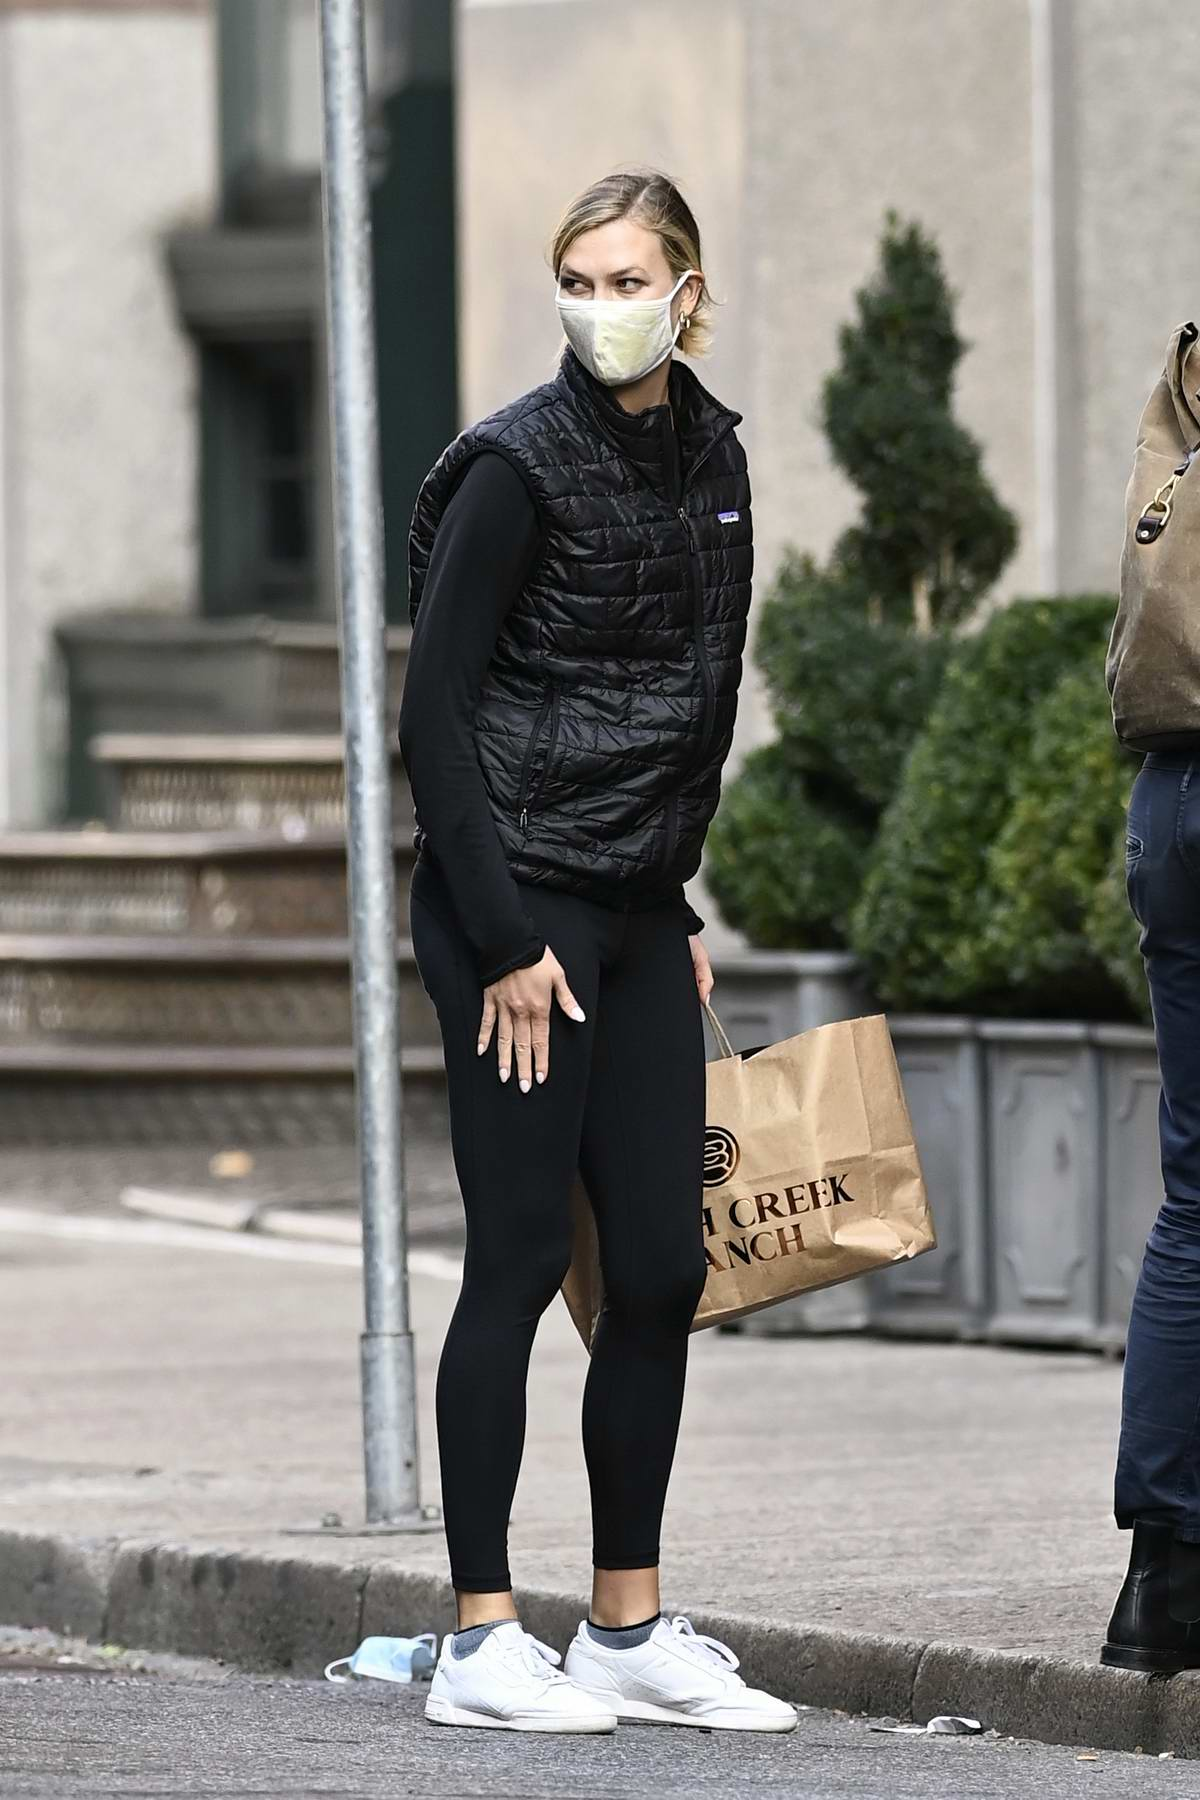 Karlie Kloss sports black sleeveless puffy jacket and leggings as she arrives home with husband Joshua Kushner in New York City